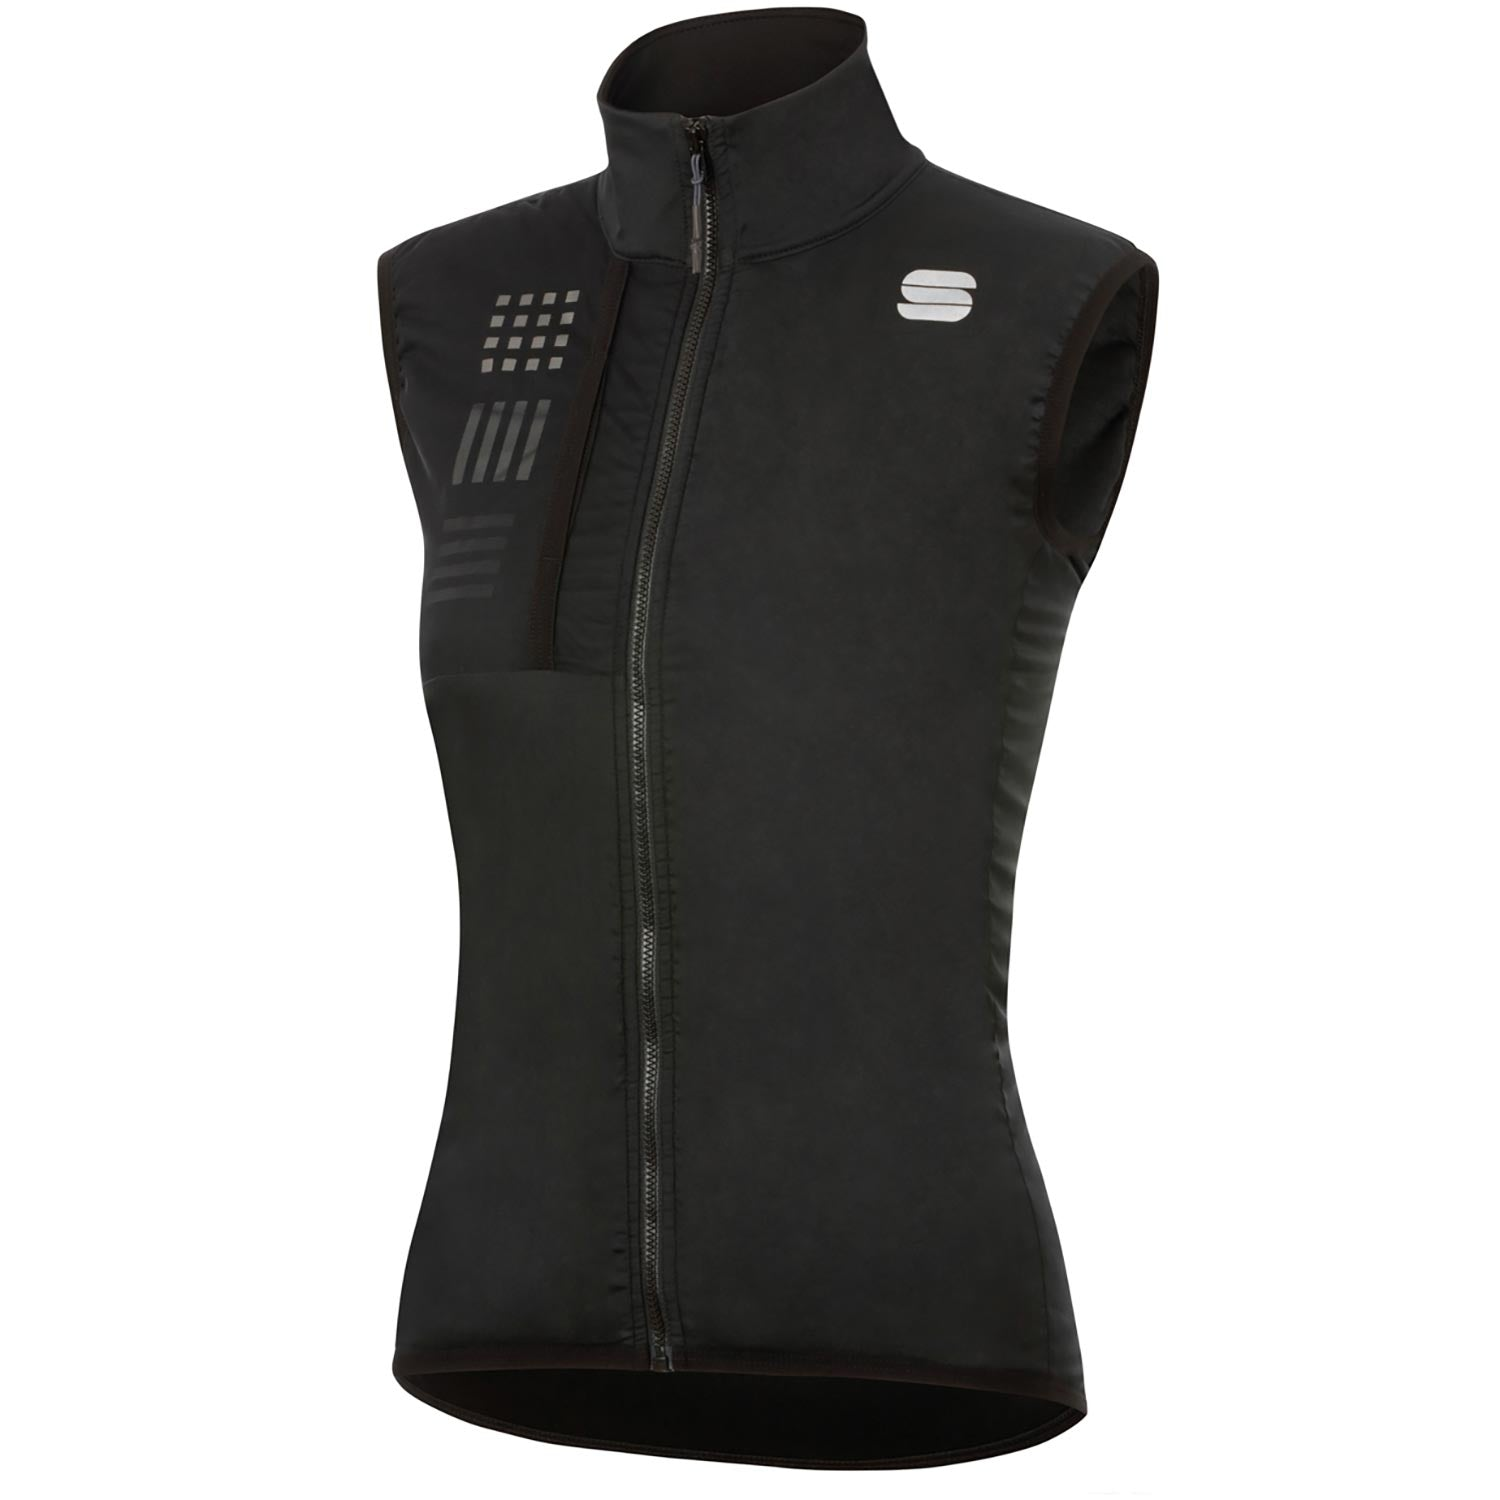 Sportful-Sportful Giara Layer Women's Vest-Black-XS-SF205090021-saddleback-elite-performance-cycling